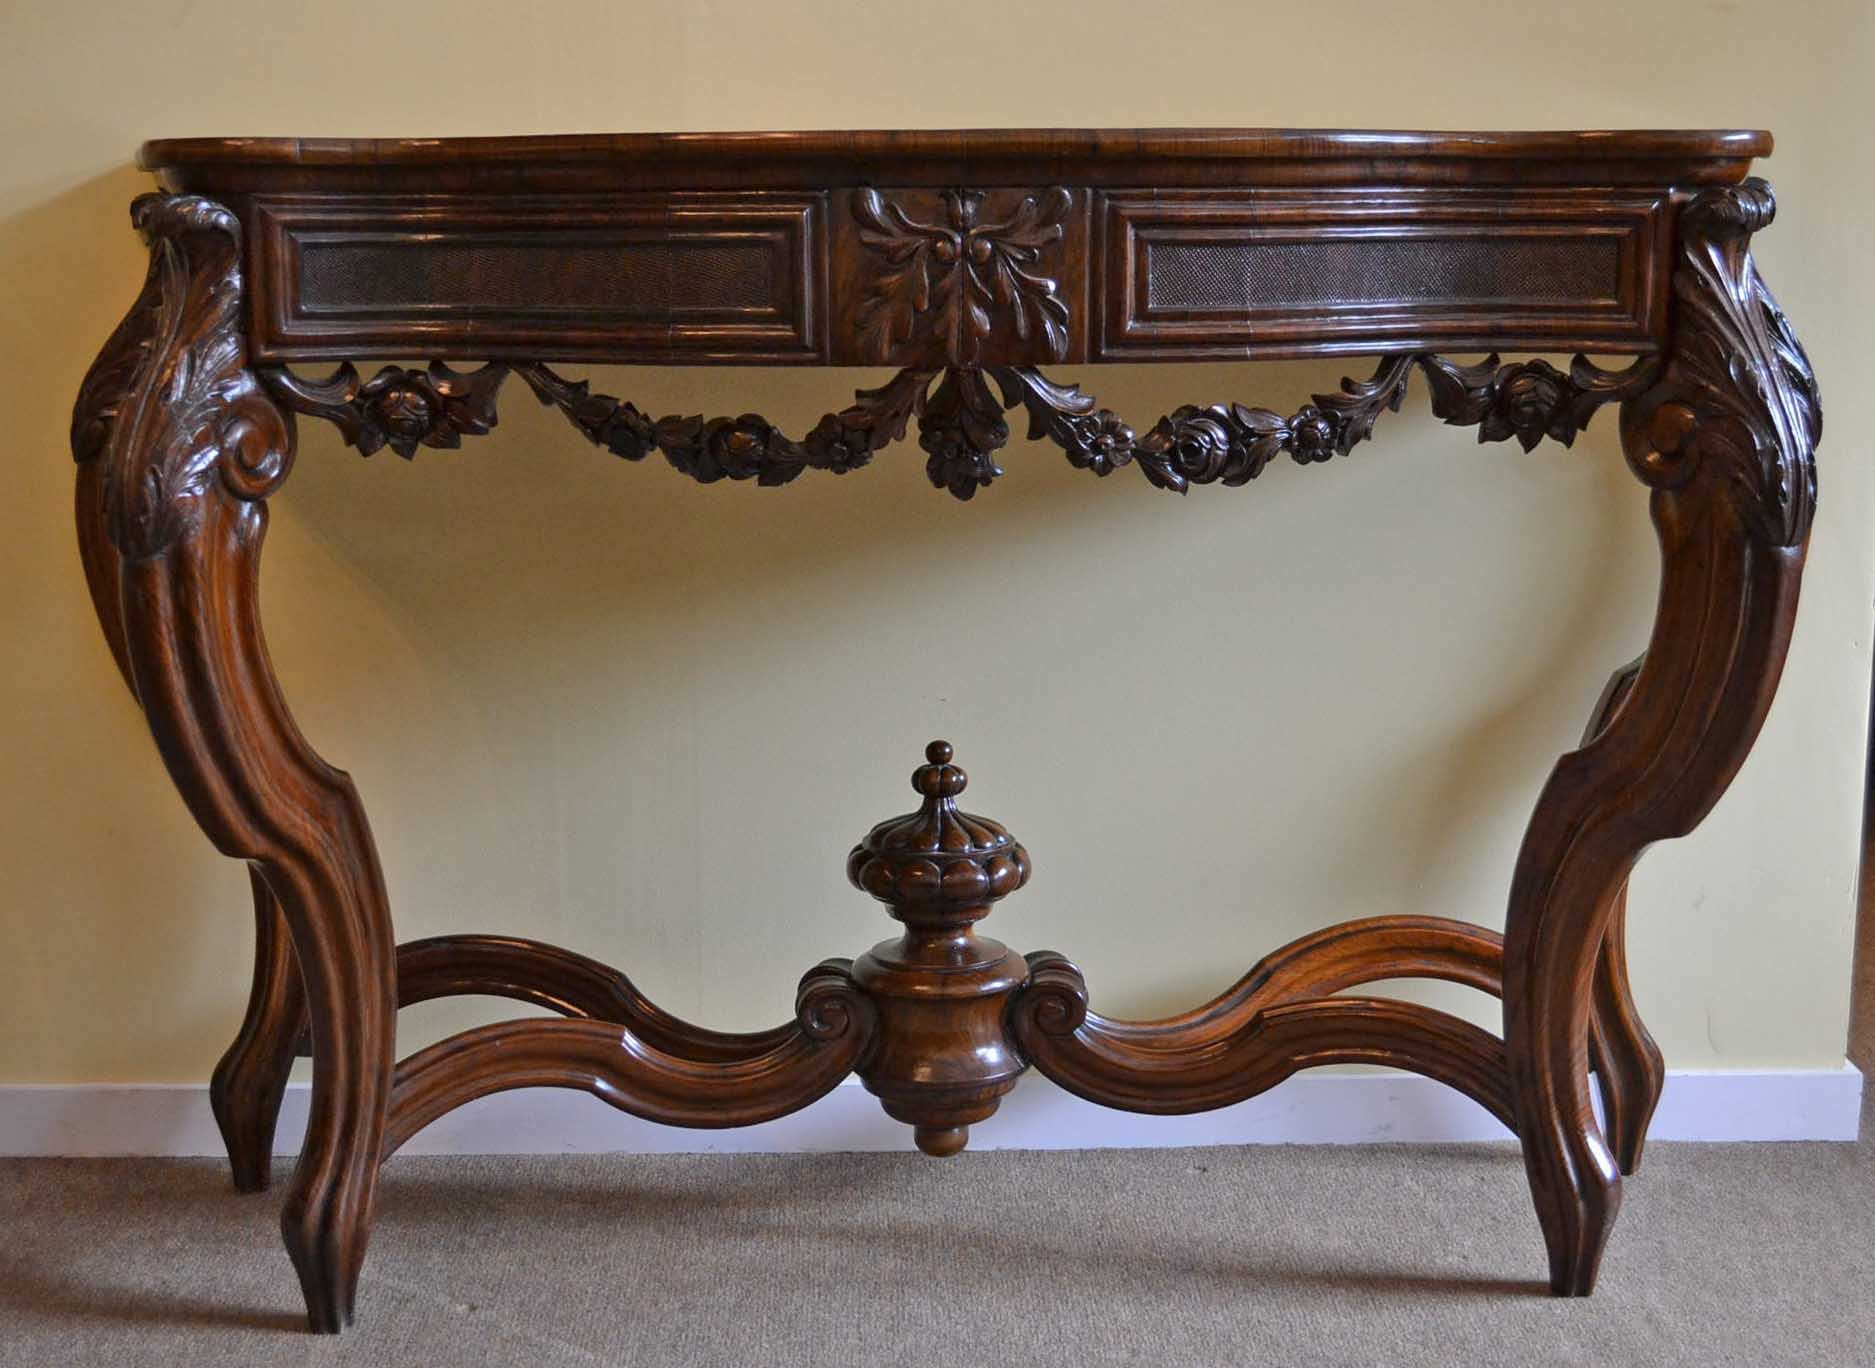 Antique French Walnut Console Table C1840 Ref No 03774